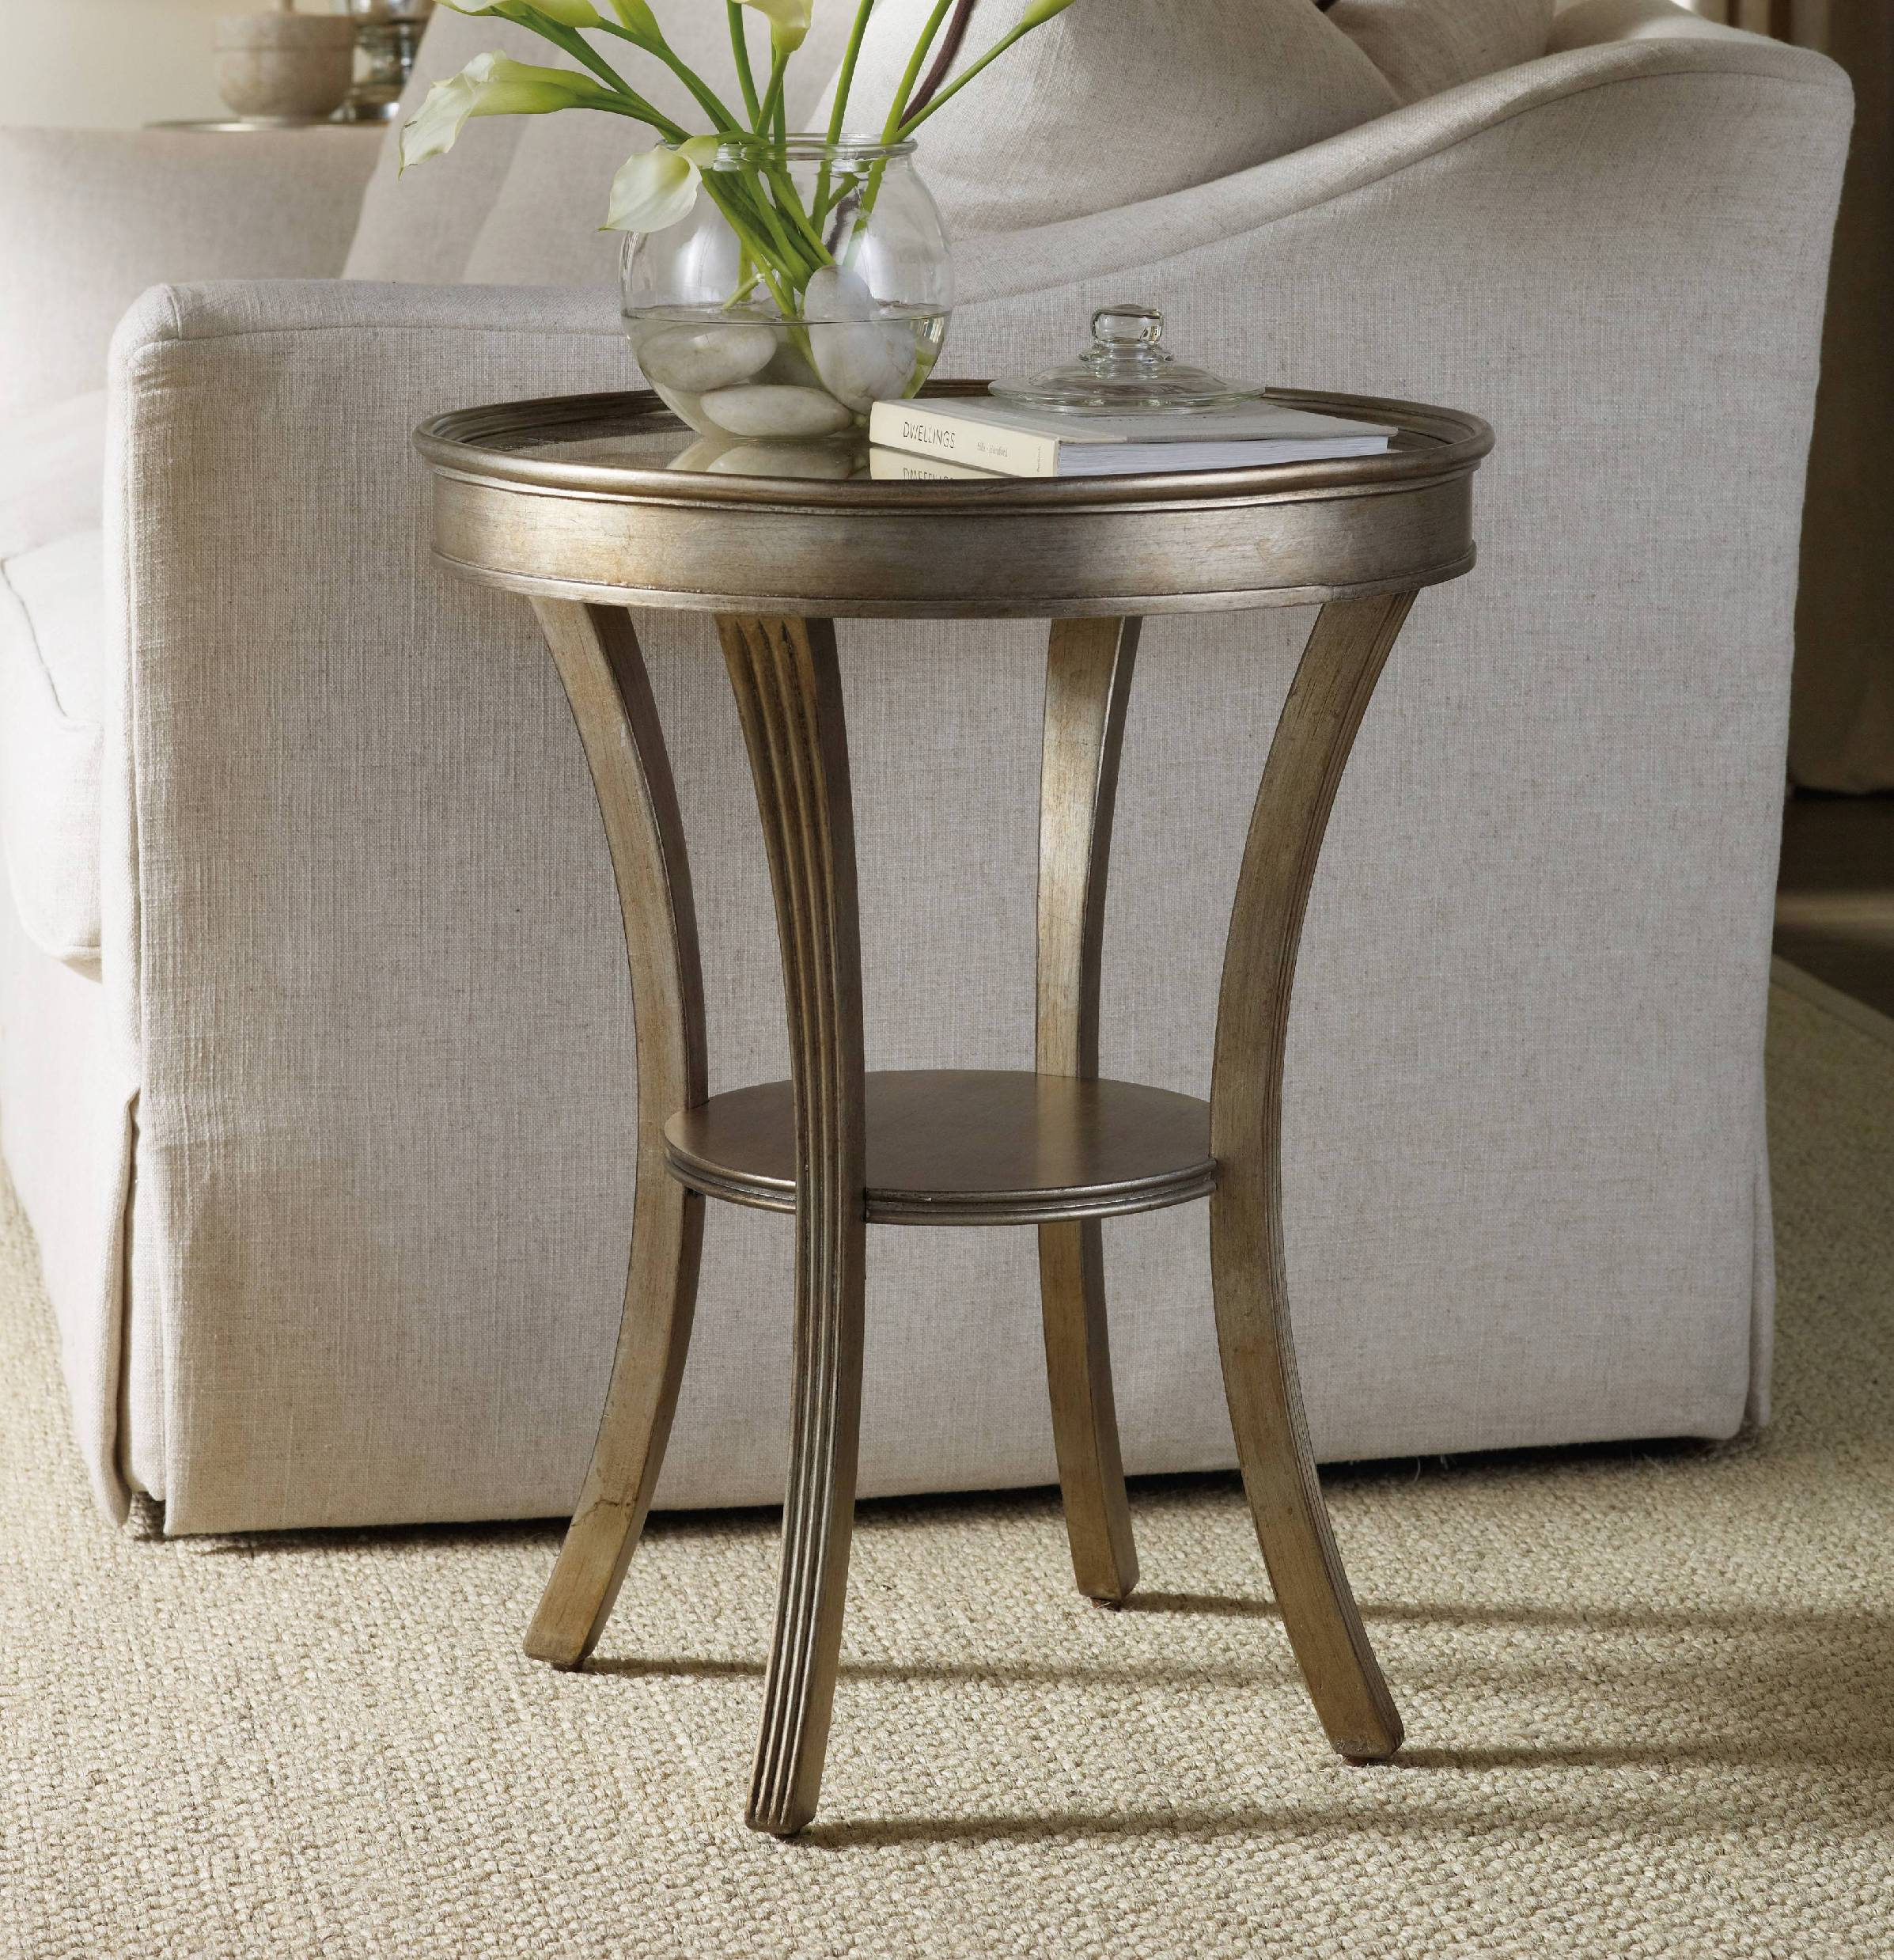 unique accent table tables with storage nucleus home side mirrored drawer glass bobreuterstl round wood and metal coffee target armchair silver set diy pallet furniture board jysk